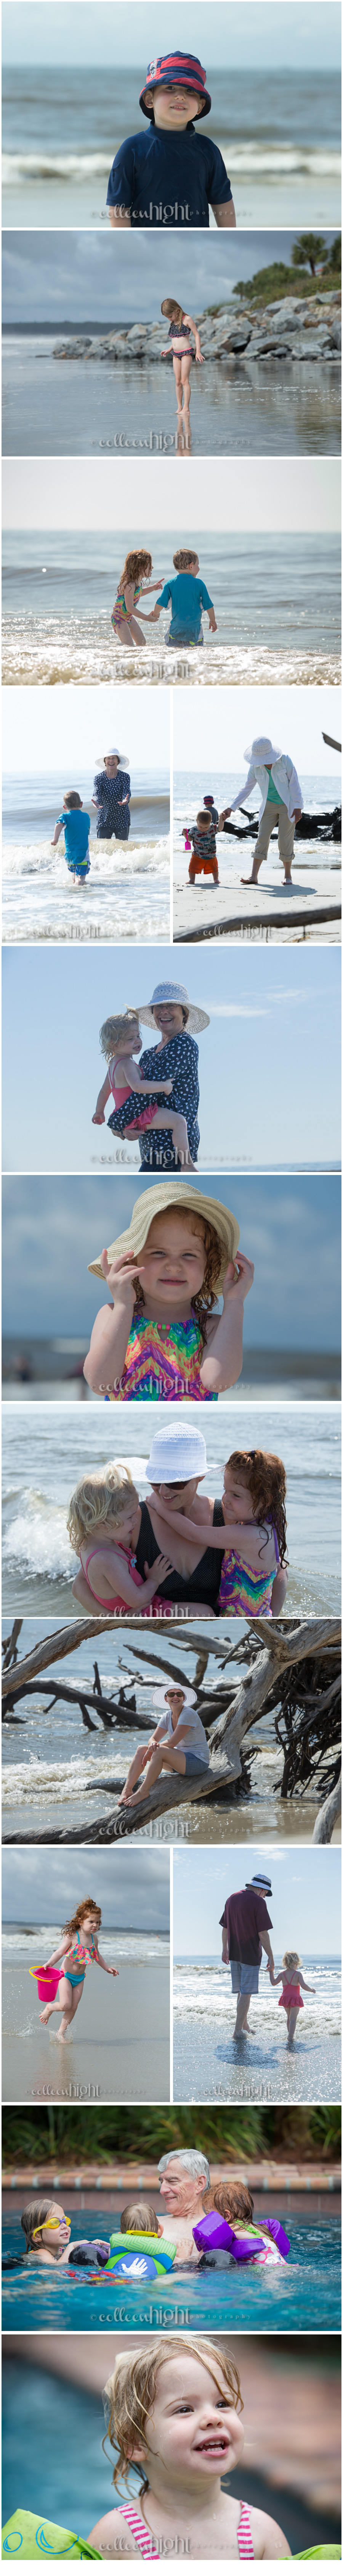 Summer Story on St Simons Island with Colleen Hight Photography